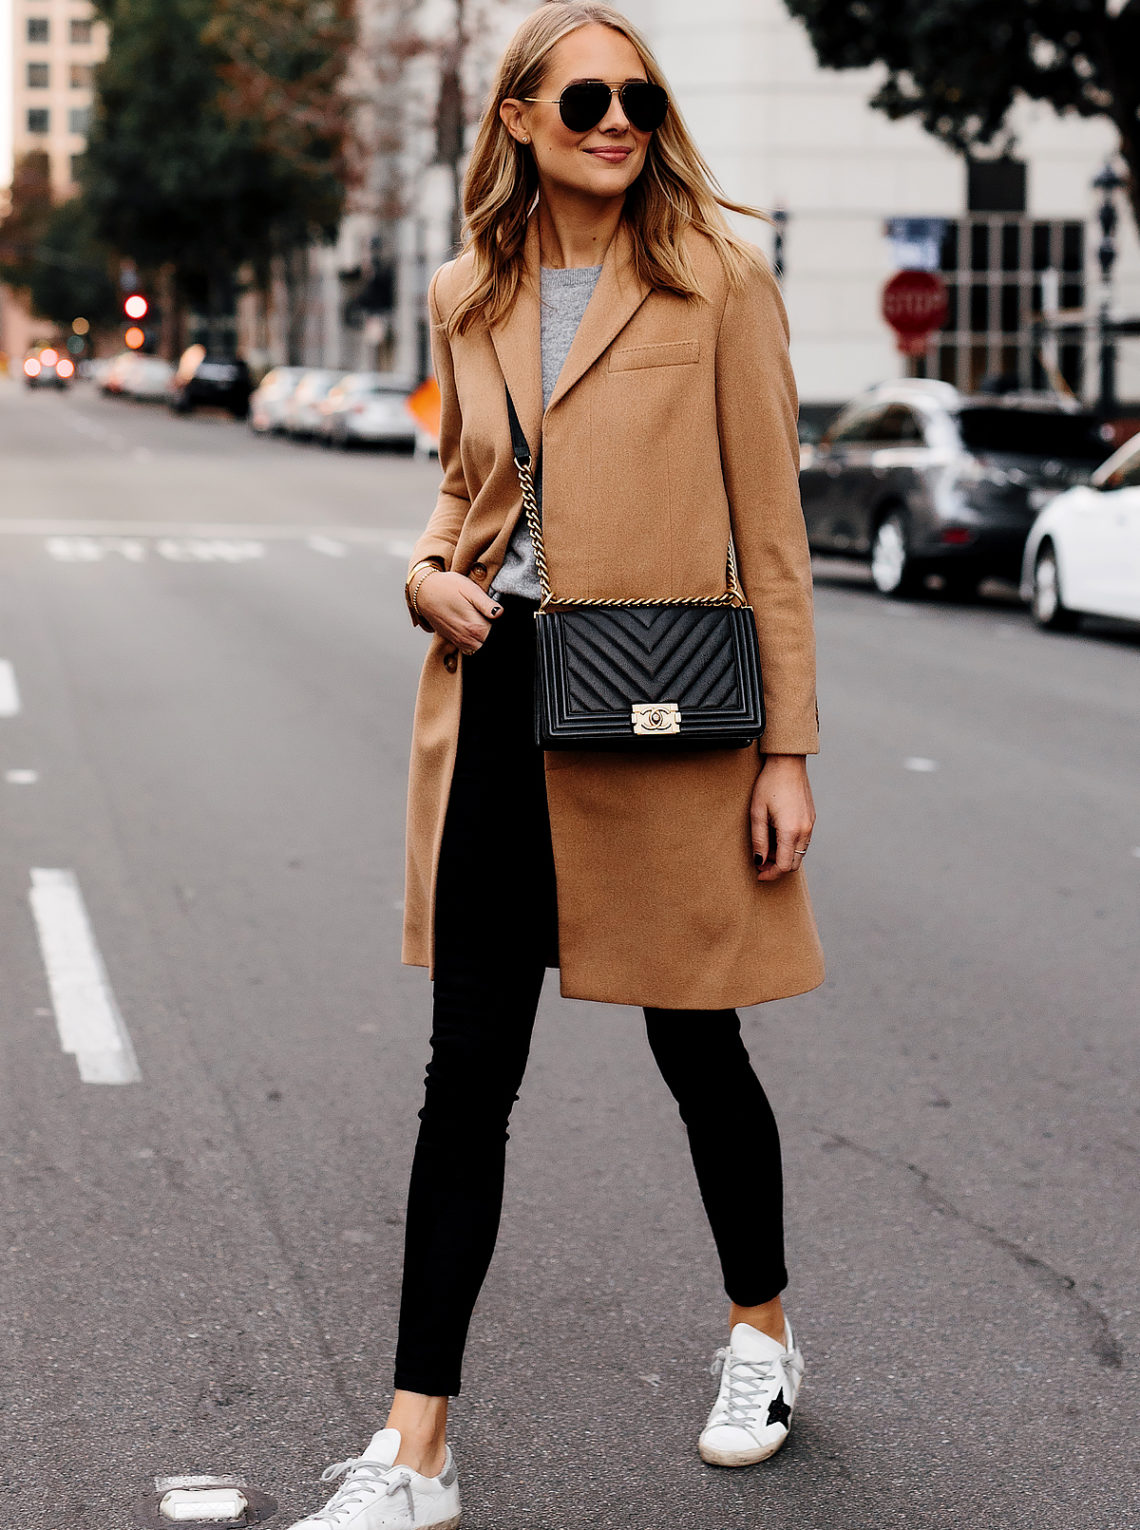 Blonde Woman Wearing Wearing Camel Coat Black Skinny Jeans Golden Goose Sneakers Outfit Chanel Black Boy Bag Fashion Jackson San Diego Fashion Blogger Street Style